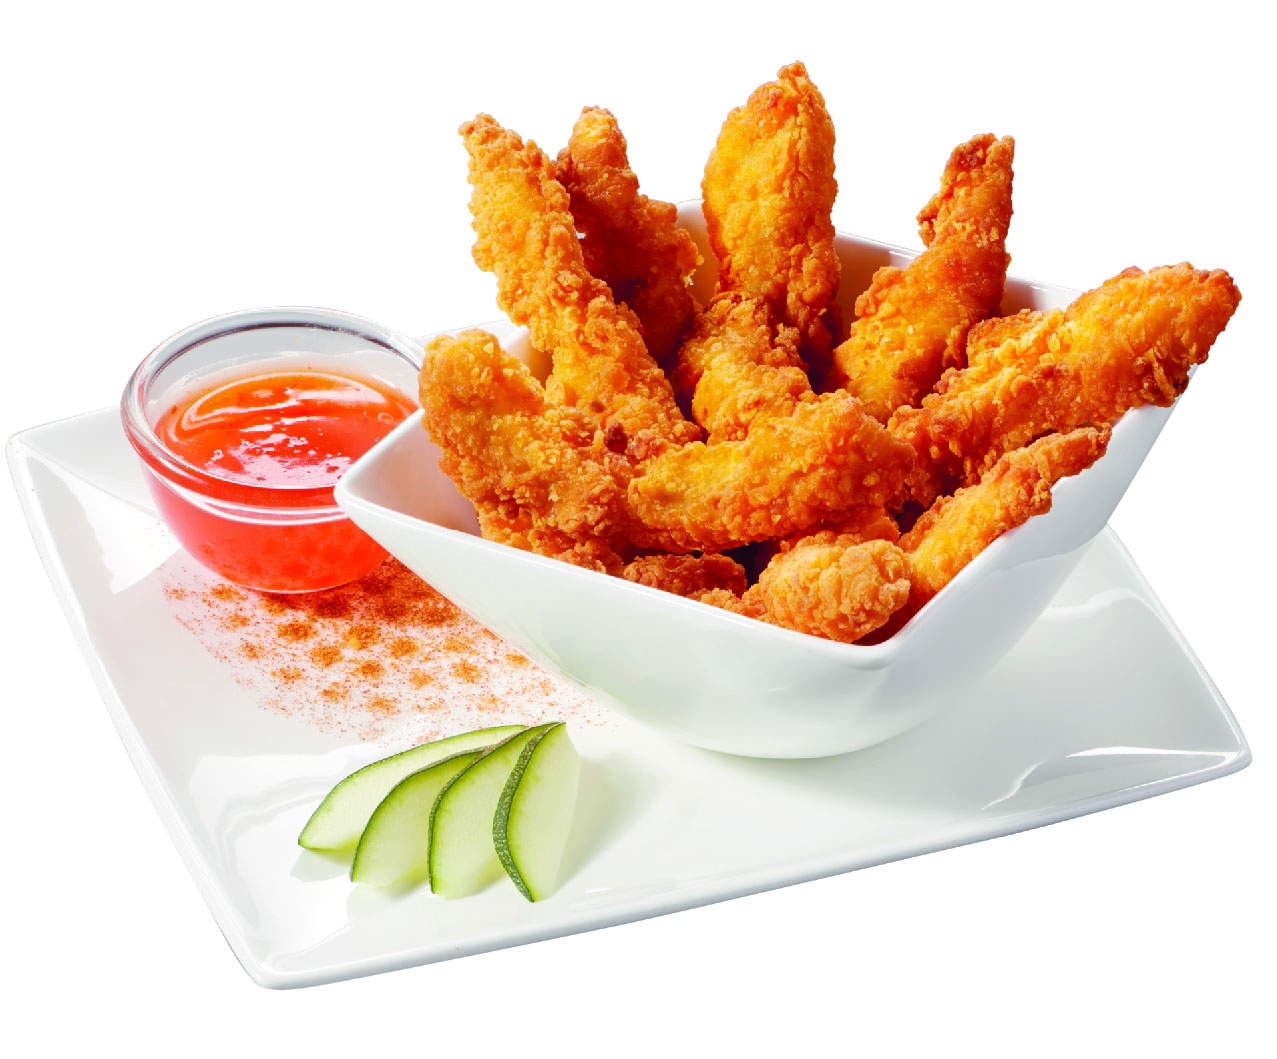 CUBOX Bandidos fingers de pollo crocantes